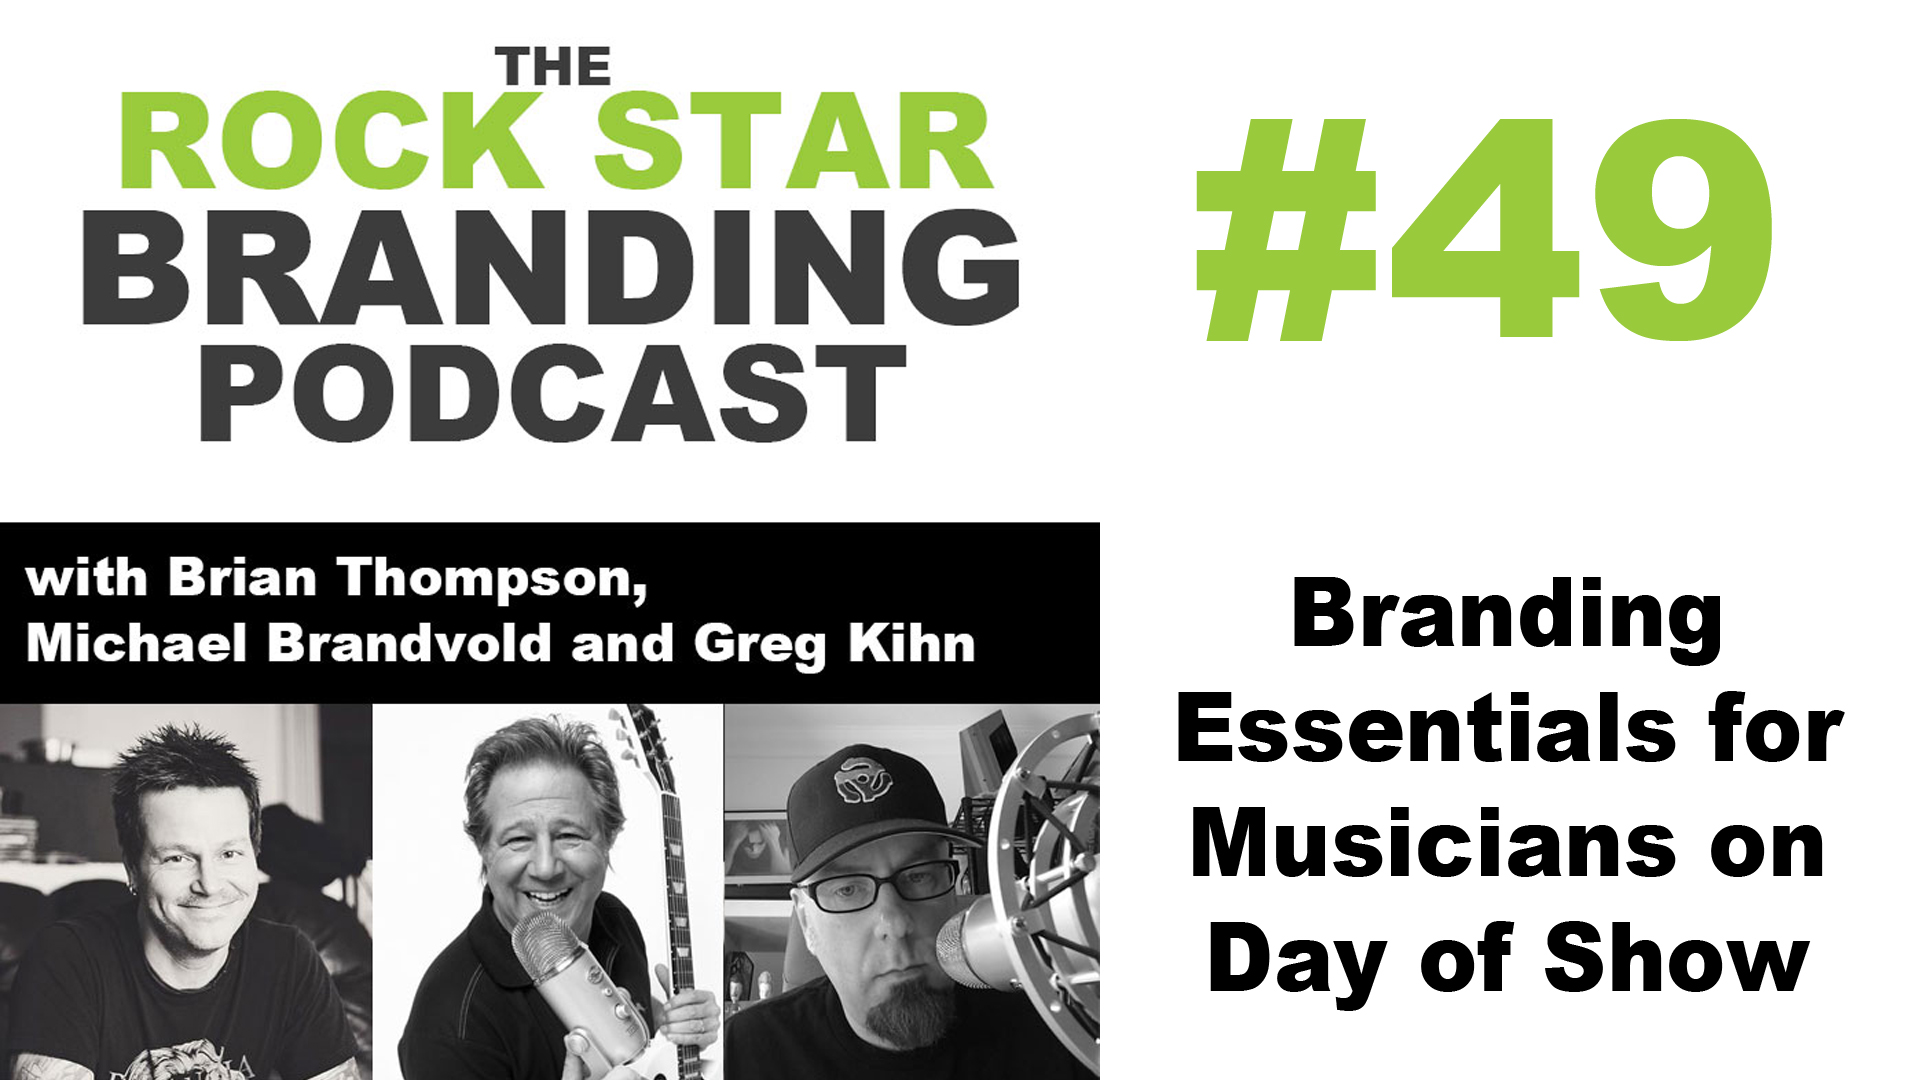 Branding Essentials for Musicians on Day of Show on Rock Star Branding